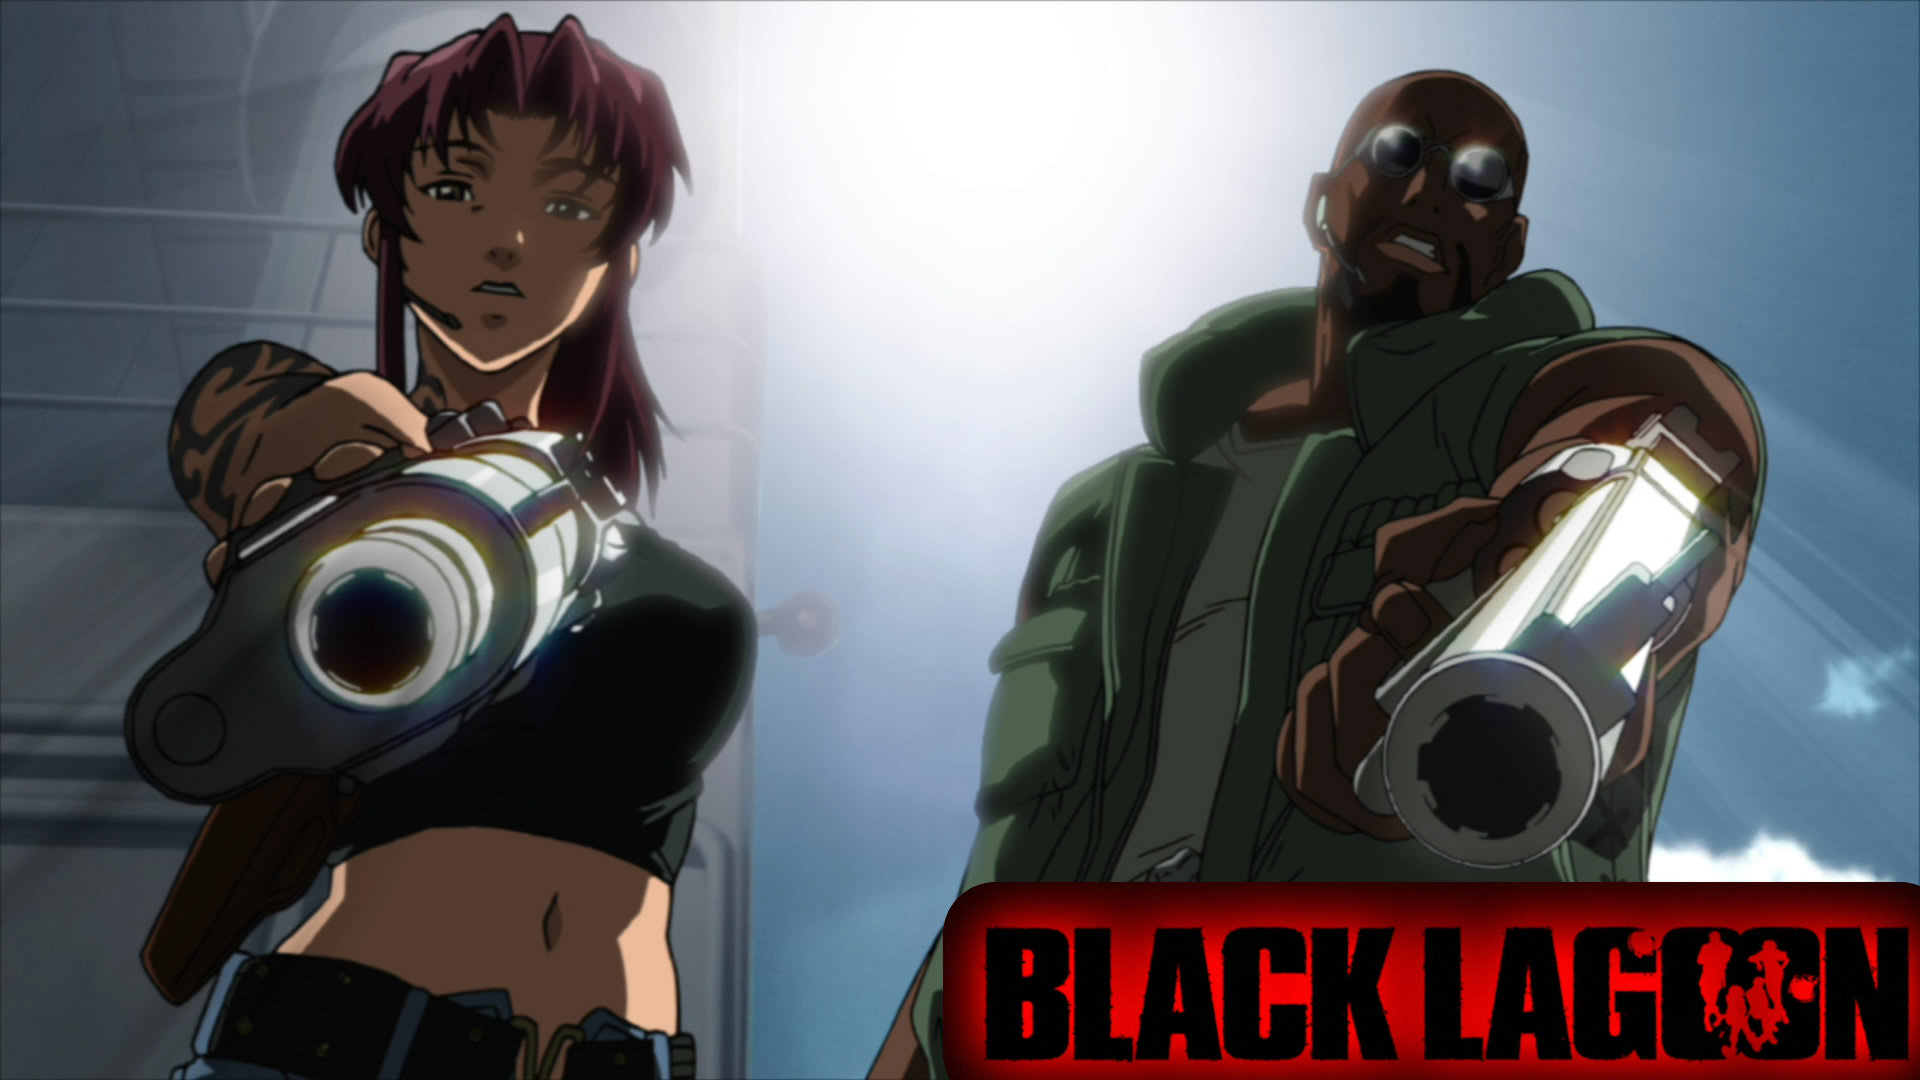 Black Lagoon Versiontwo